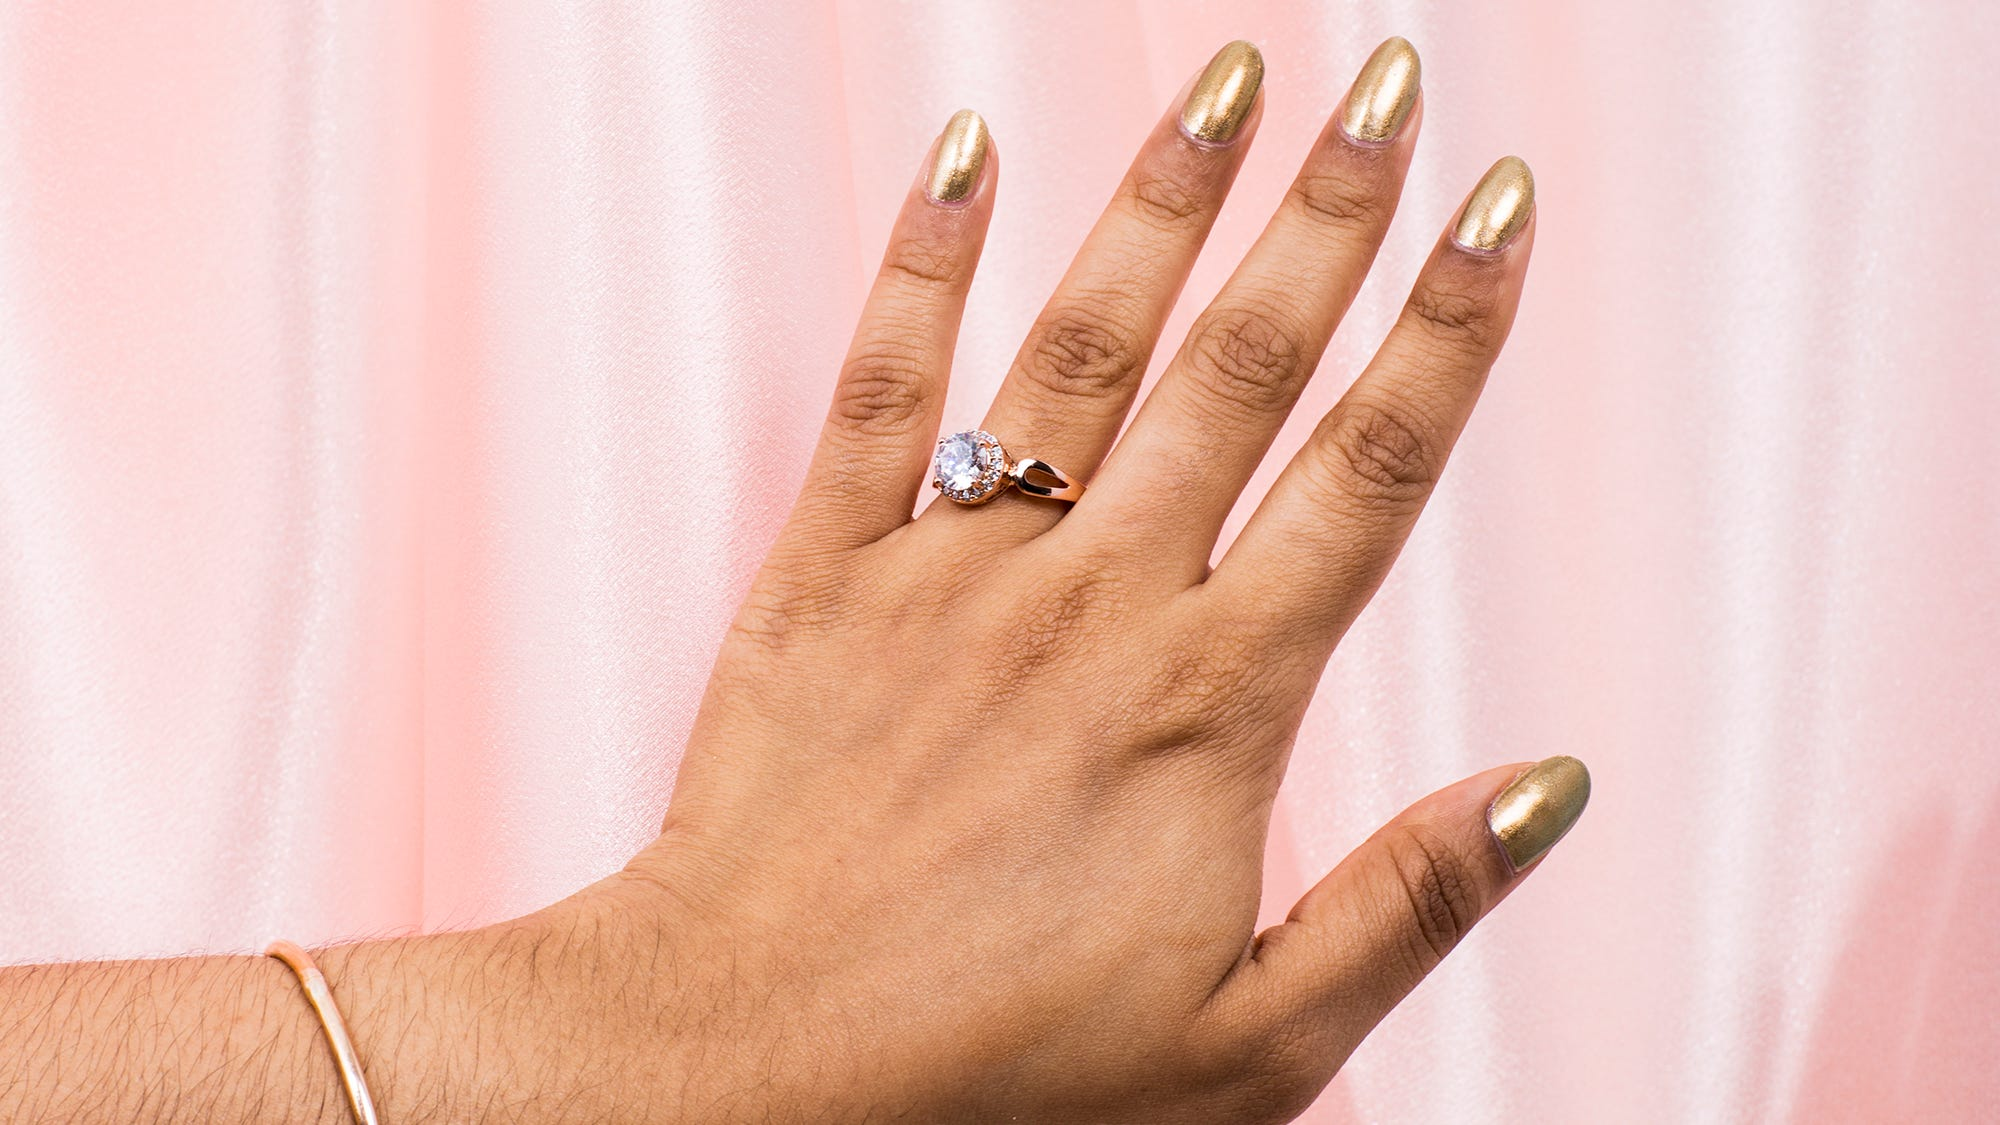 finger ring is band jewelry thin on vs rings white abby style wedding suzy sparks engagement a classic left diamond gold blog halo worn the hand